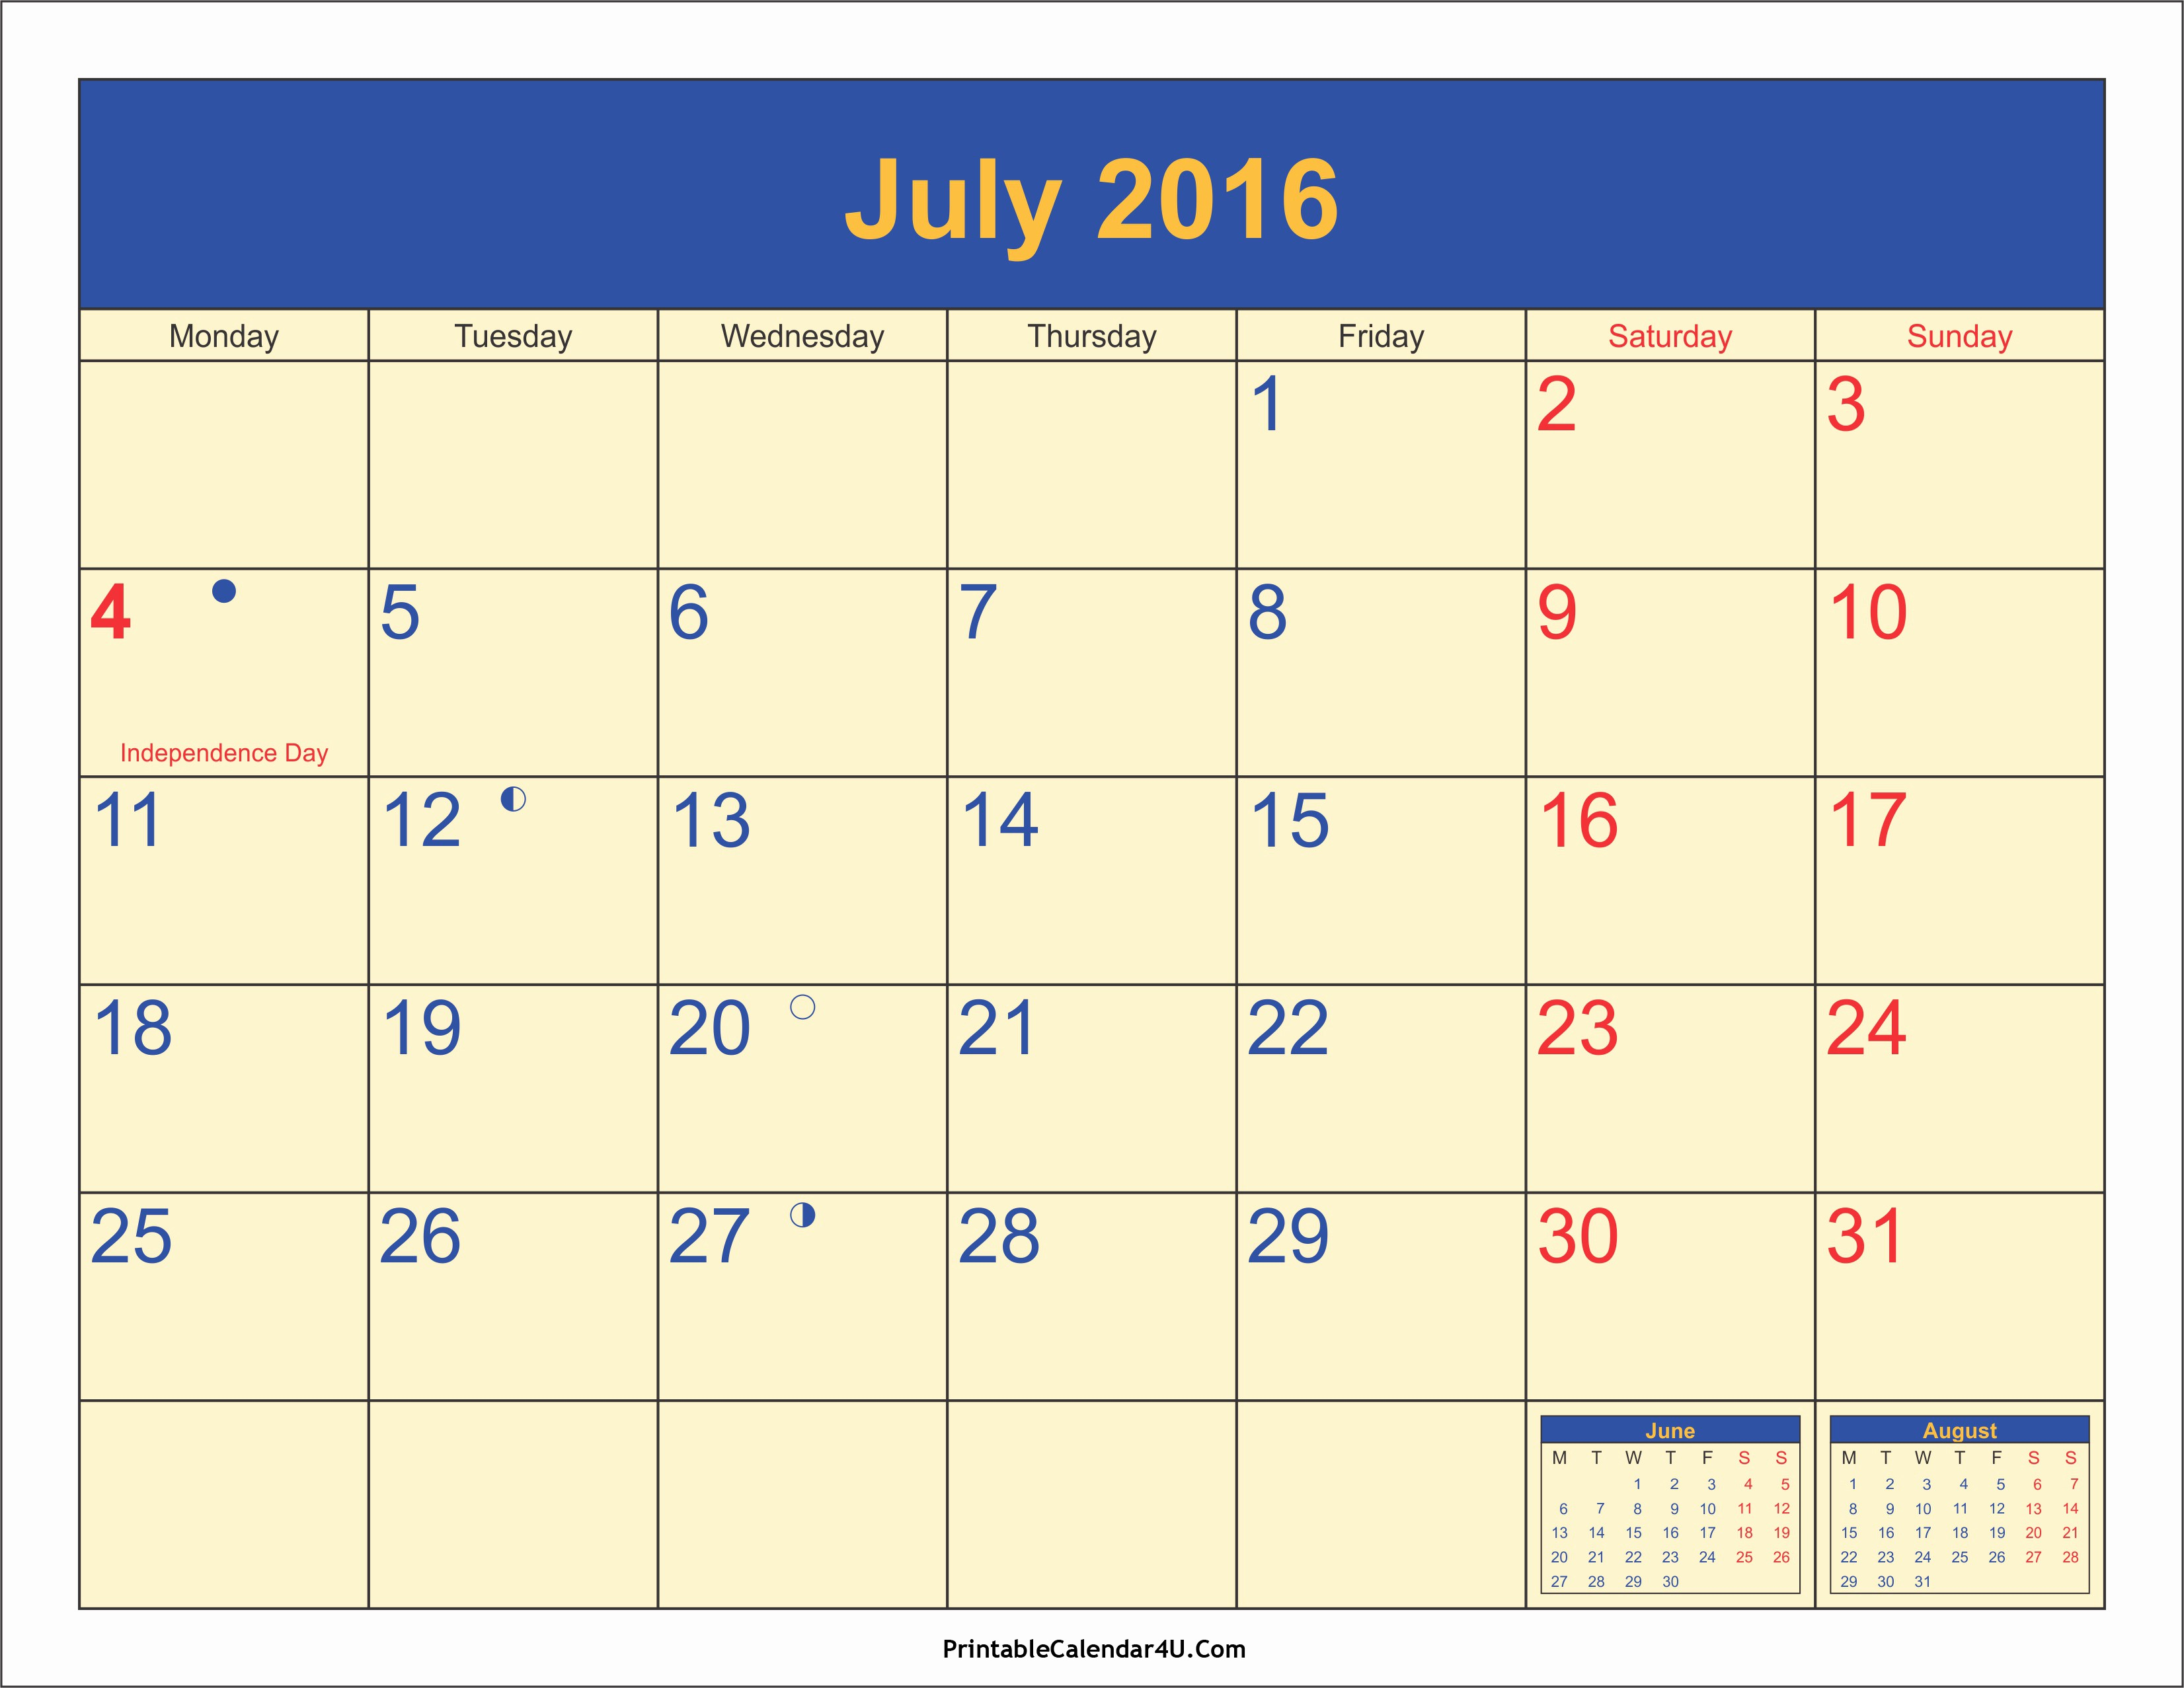 Printable 2016 Calendars with Holidays Awesome July 2016 Calendar Printable with Holidays Pdf and Jpg